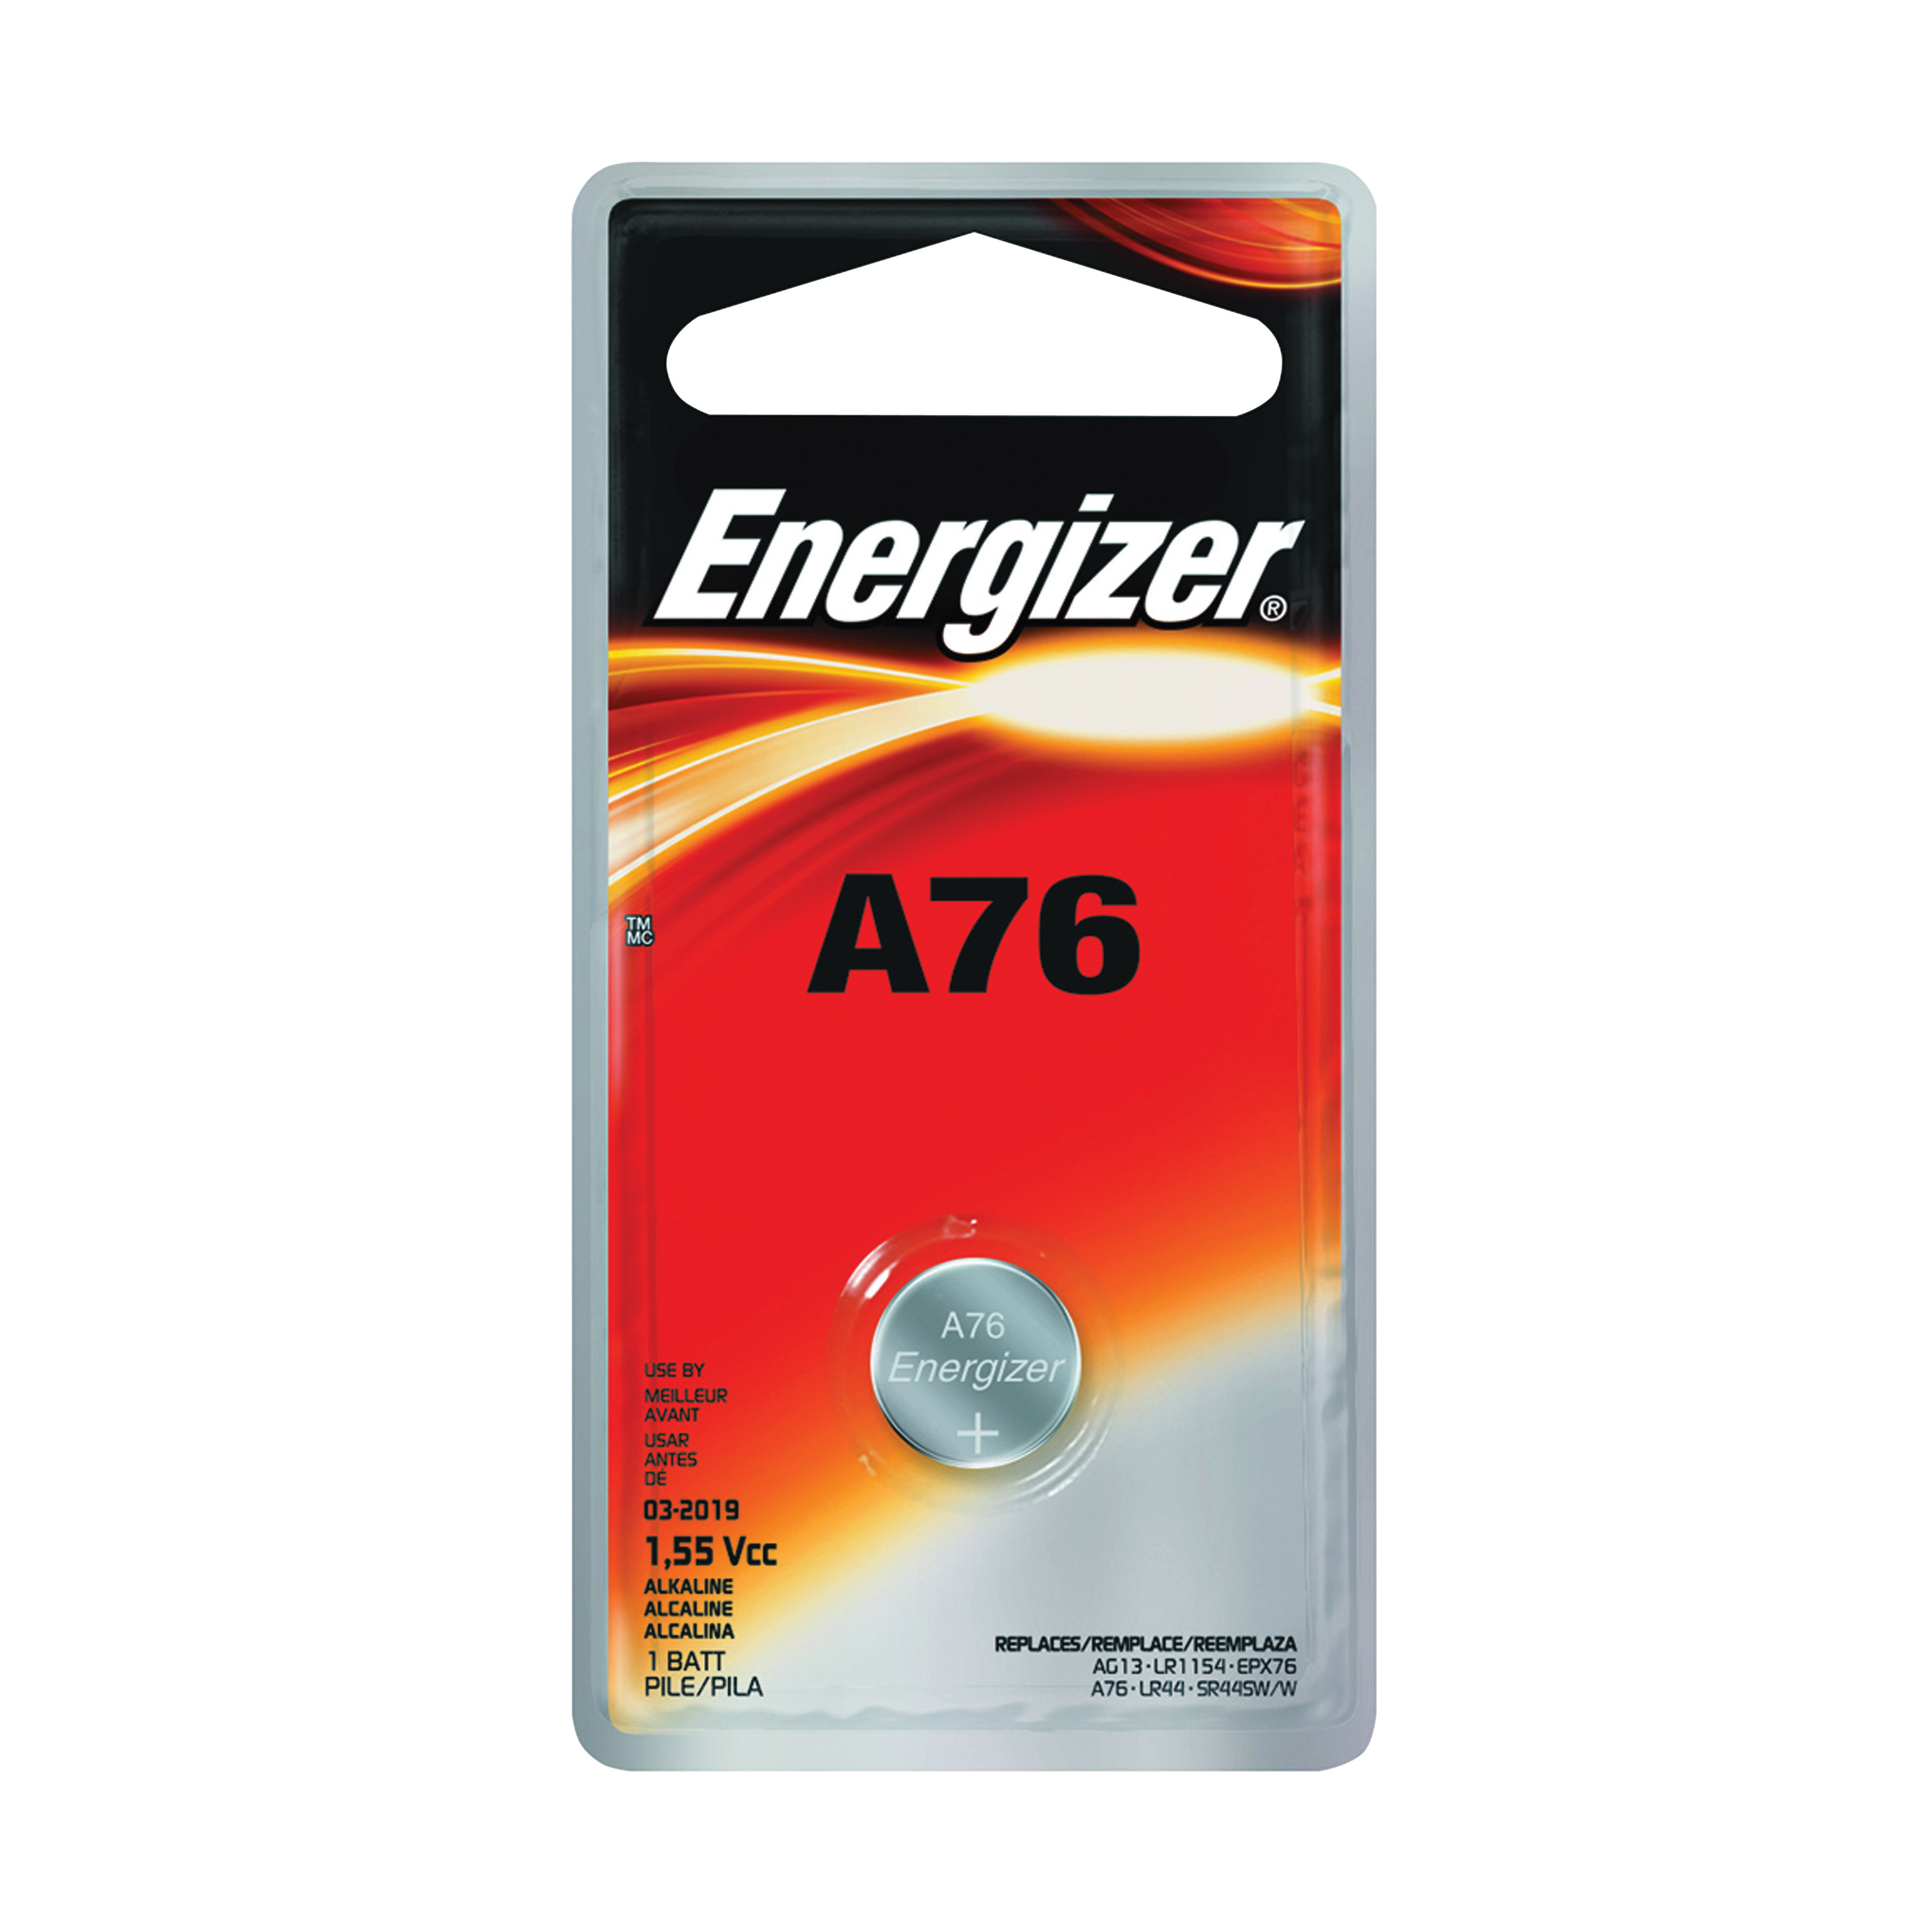 Picture of Energizer A76BPZ Alkaline Battery, 1.5 V Battery, 118 mAh, A76 Battery, Manganese Dioxide